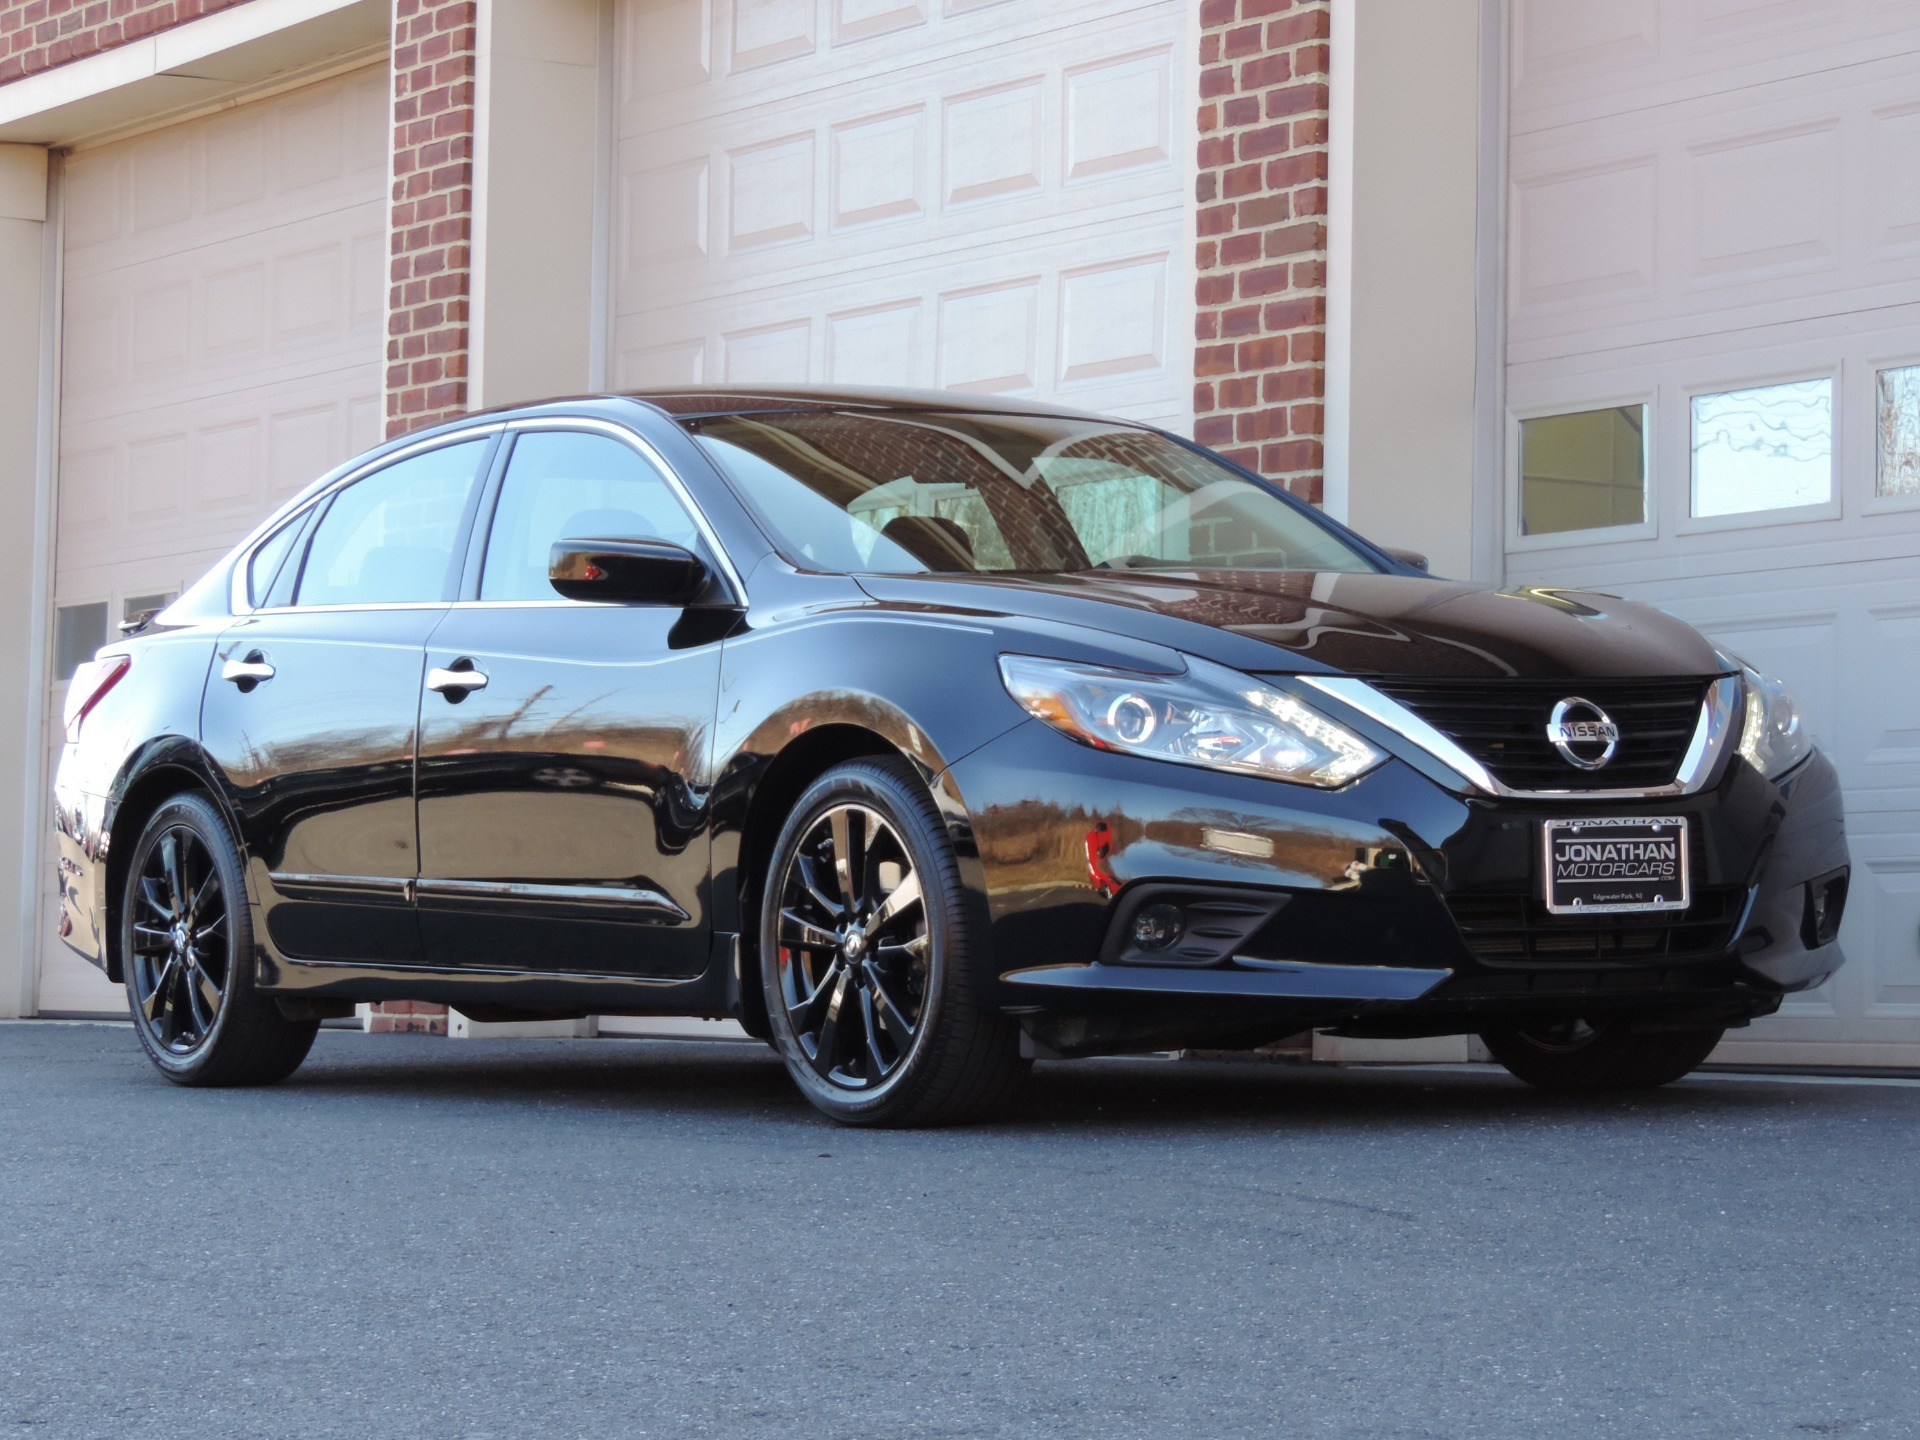 Nissan Dealers In Nj >> 2017 Nissan Altima 2.5 SR Stock # 248840 for sale near Edgewater Park, NJ | NJ Nissan Dealer